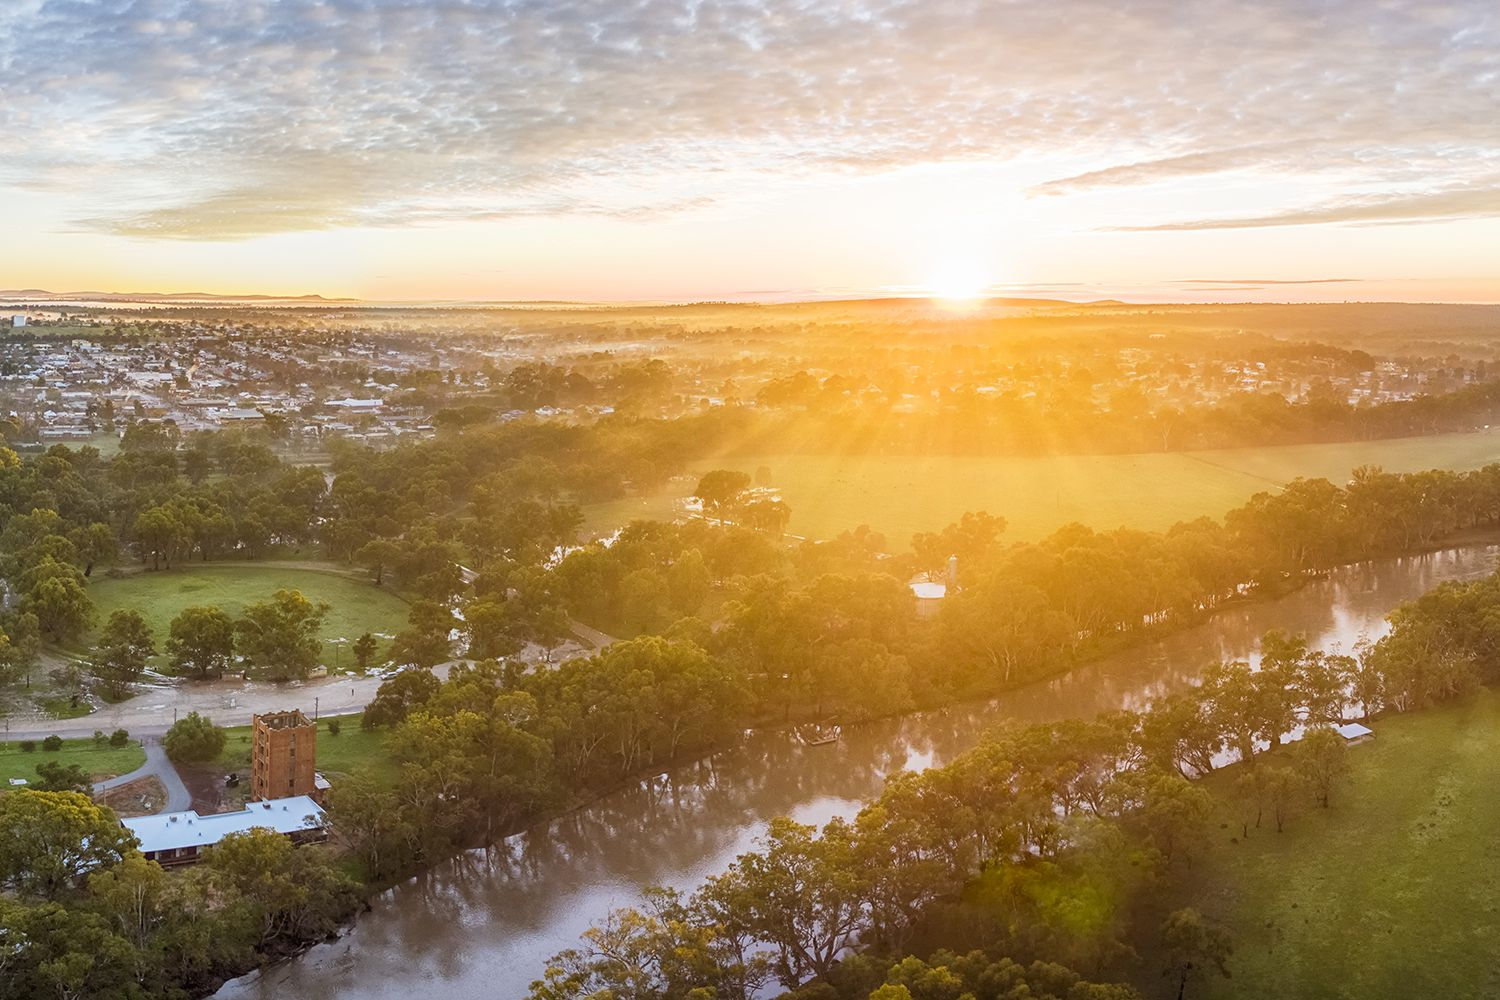 A glorious sunrise over Narrandera in the Riverina, NSW